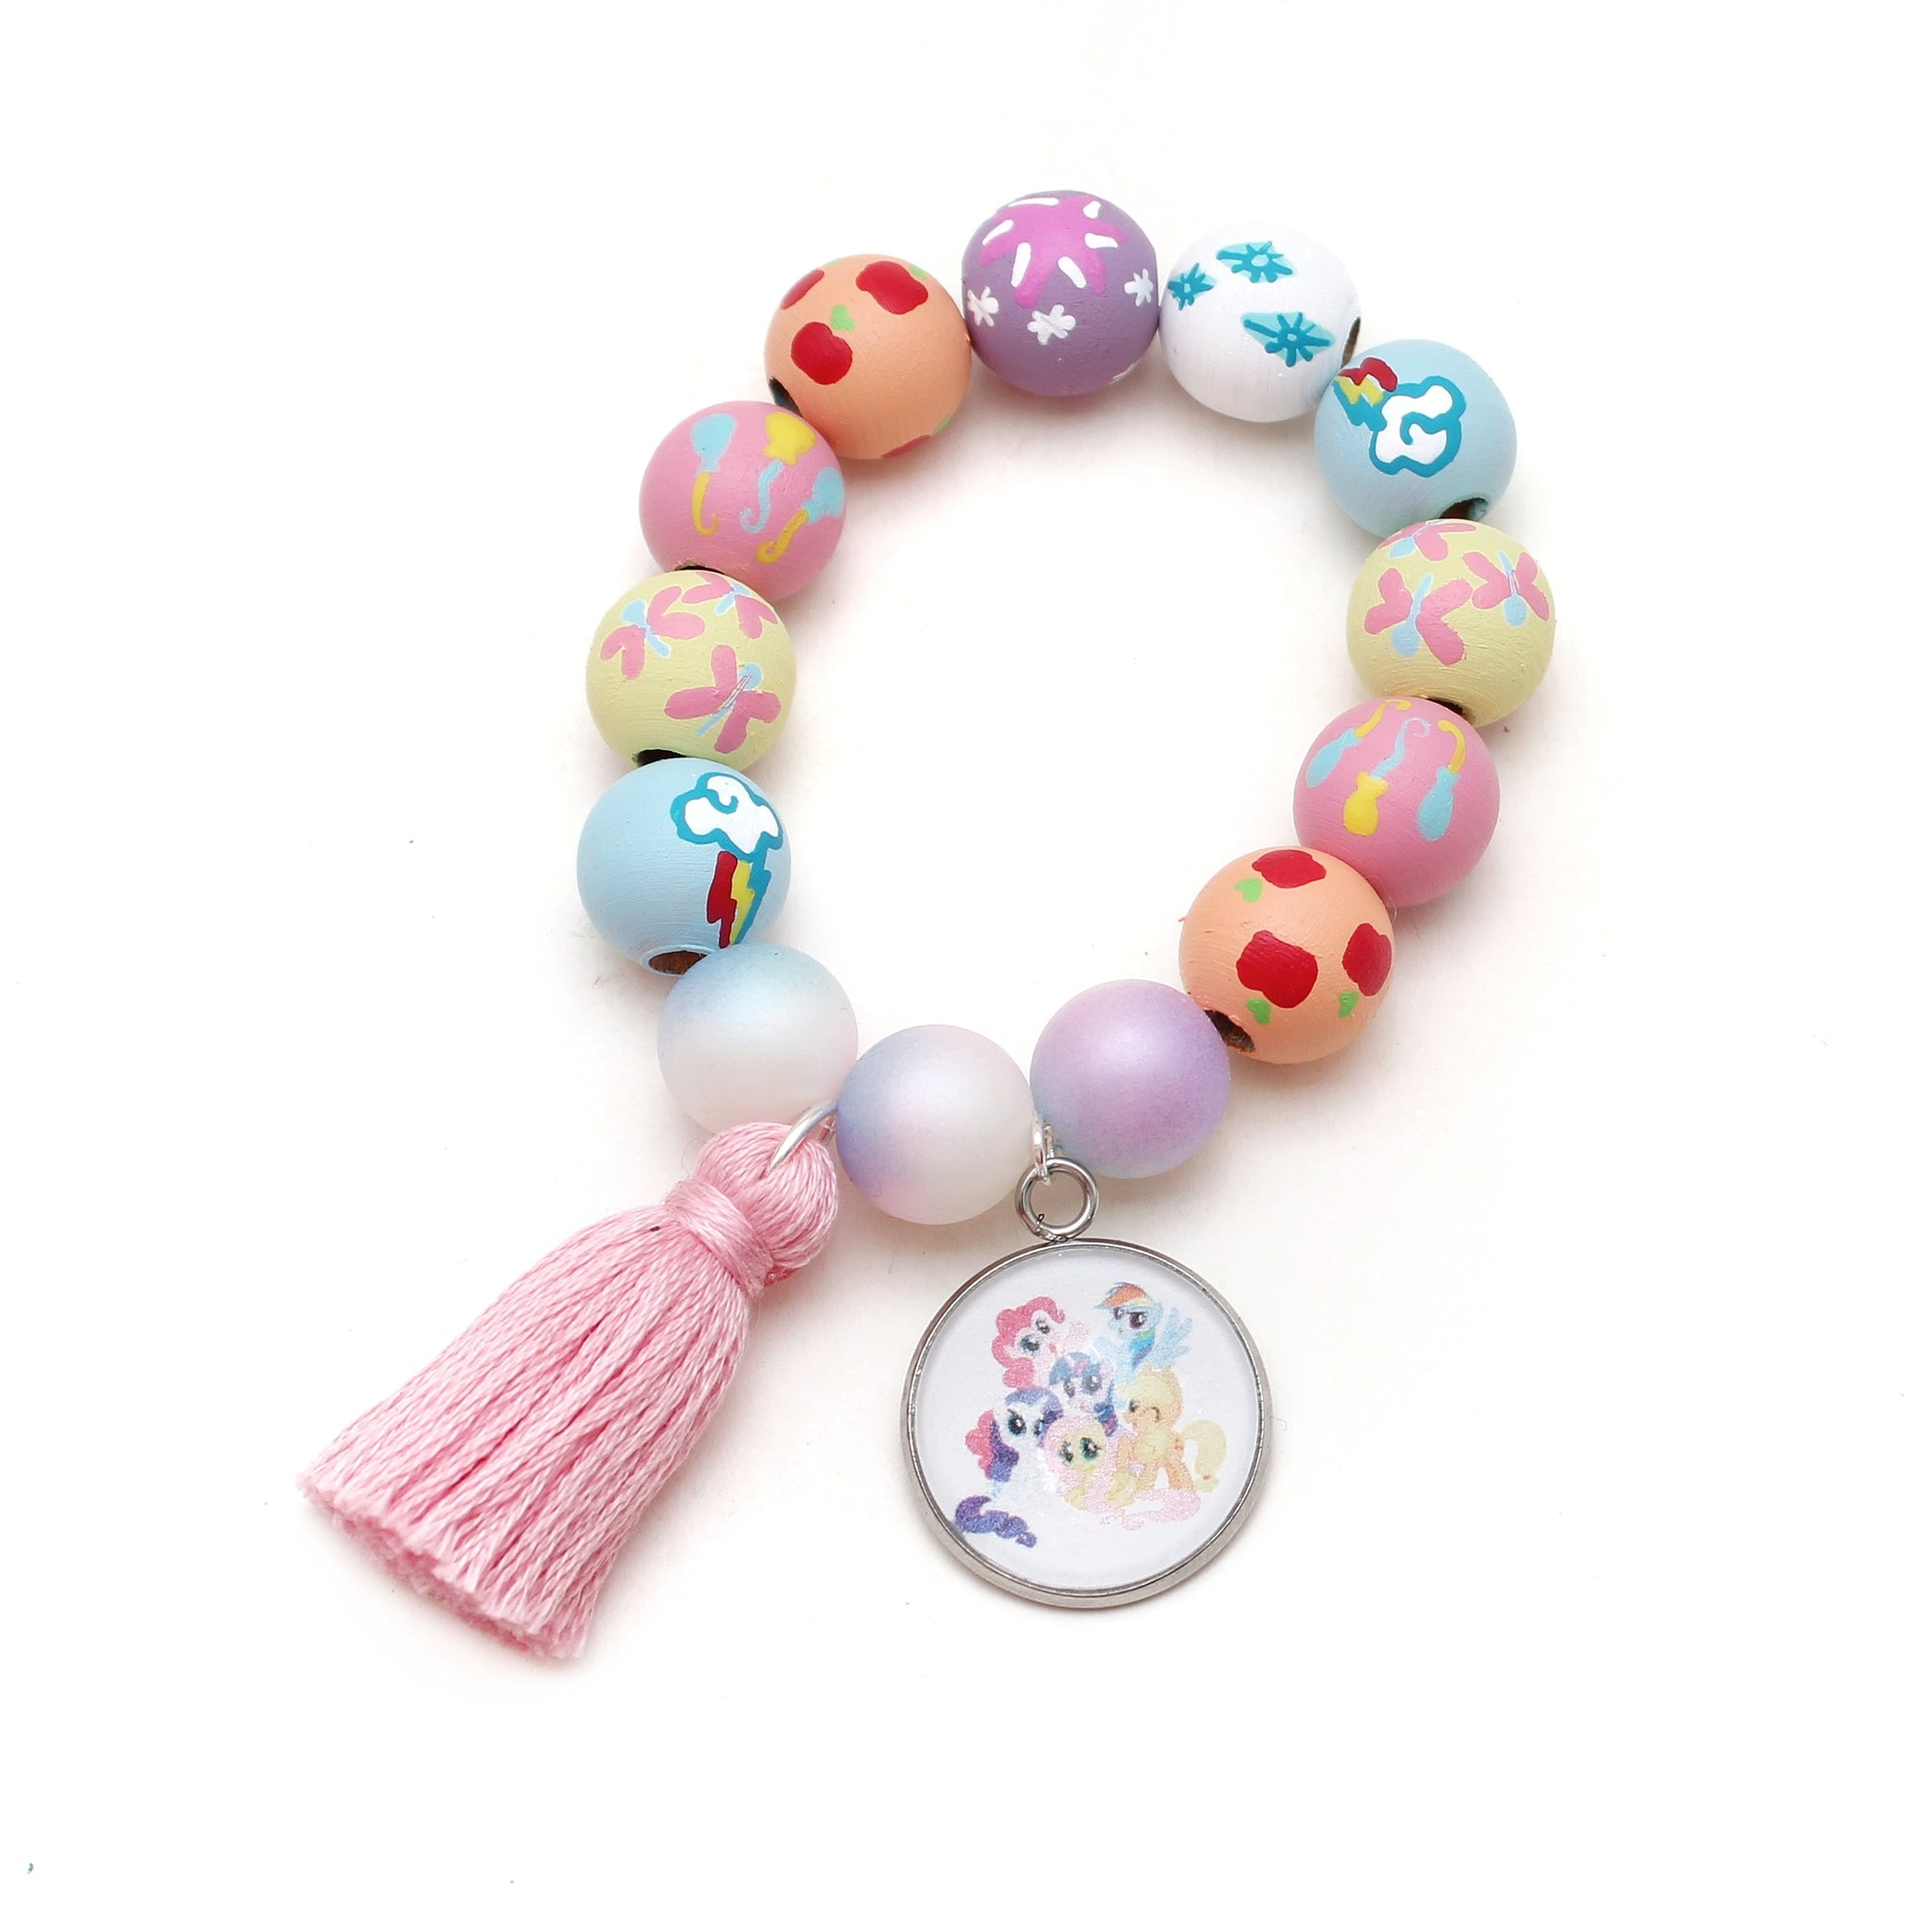 My Little Pony Inspired Charm and Tassel Hand Painted Bracelet